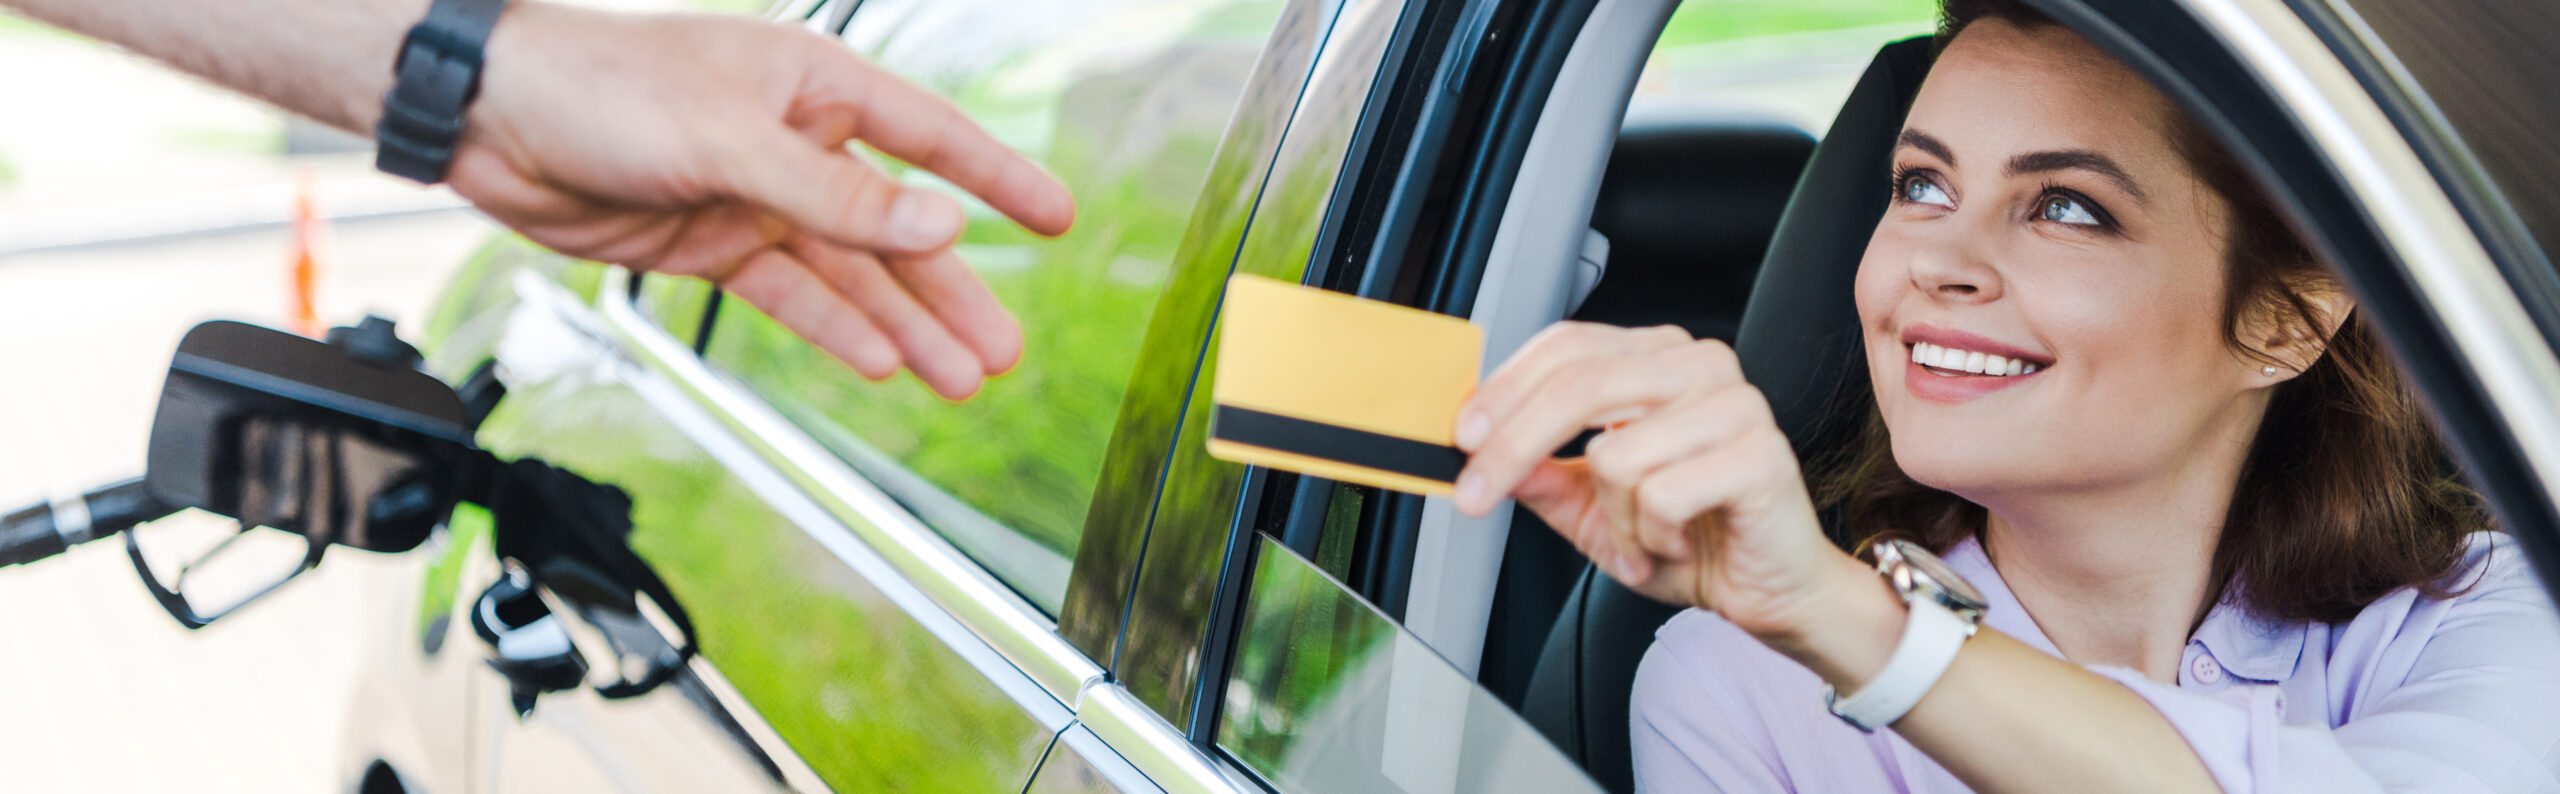 panoramic shot of cheerful woman sitting in car and giving credit card to worker at gas station